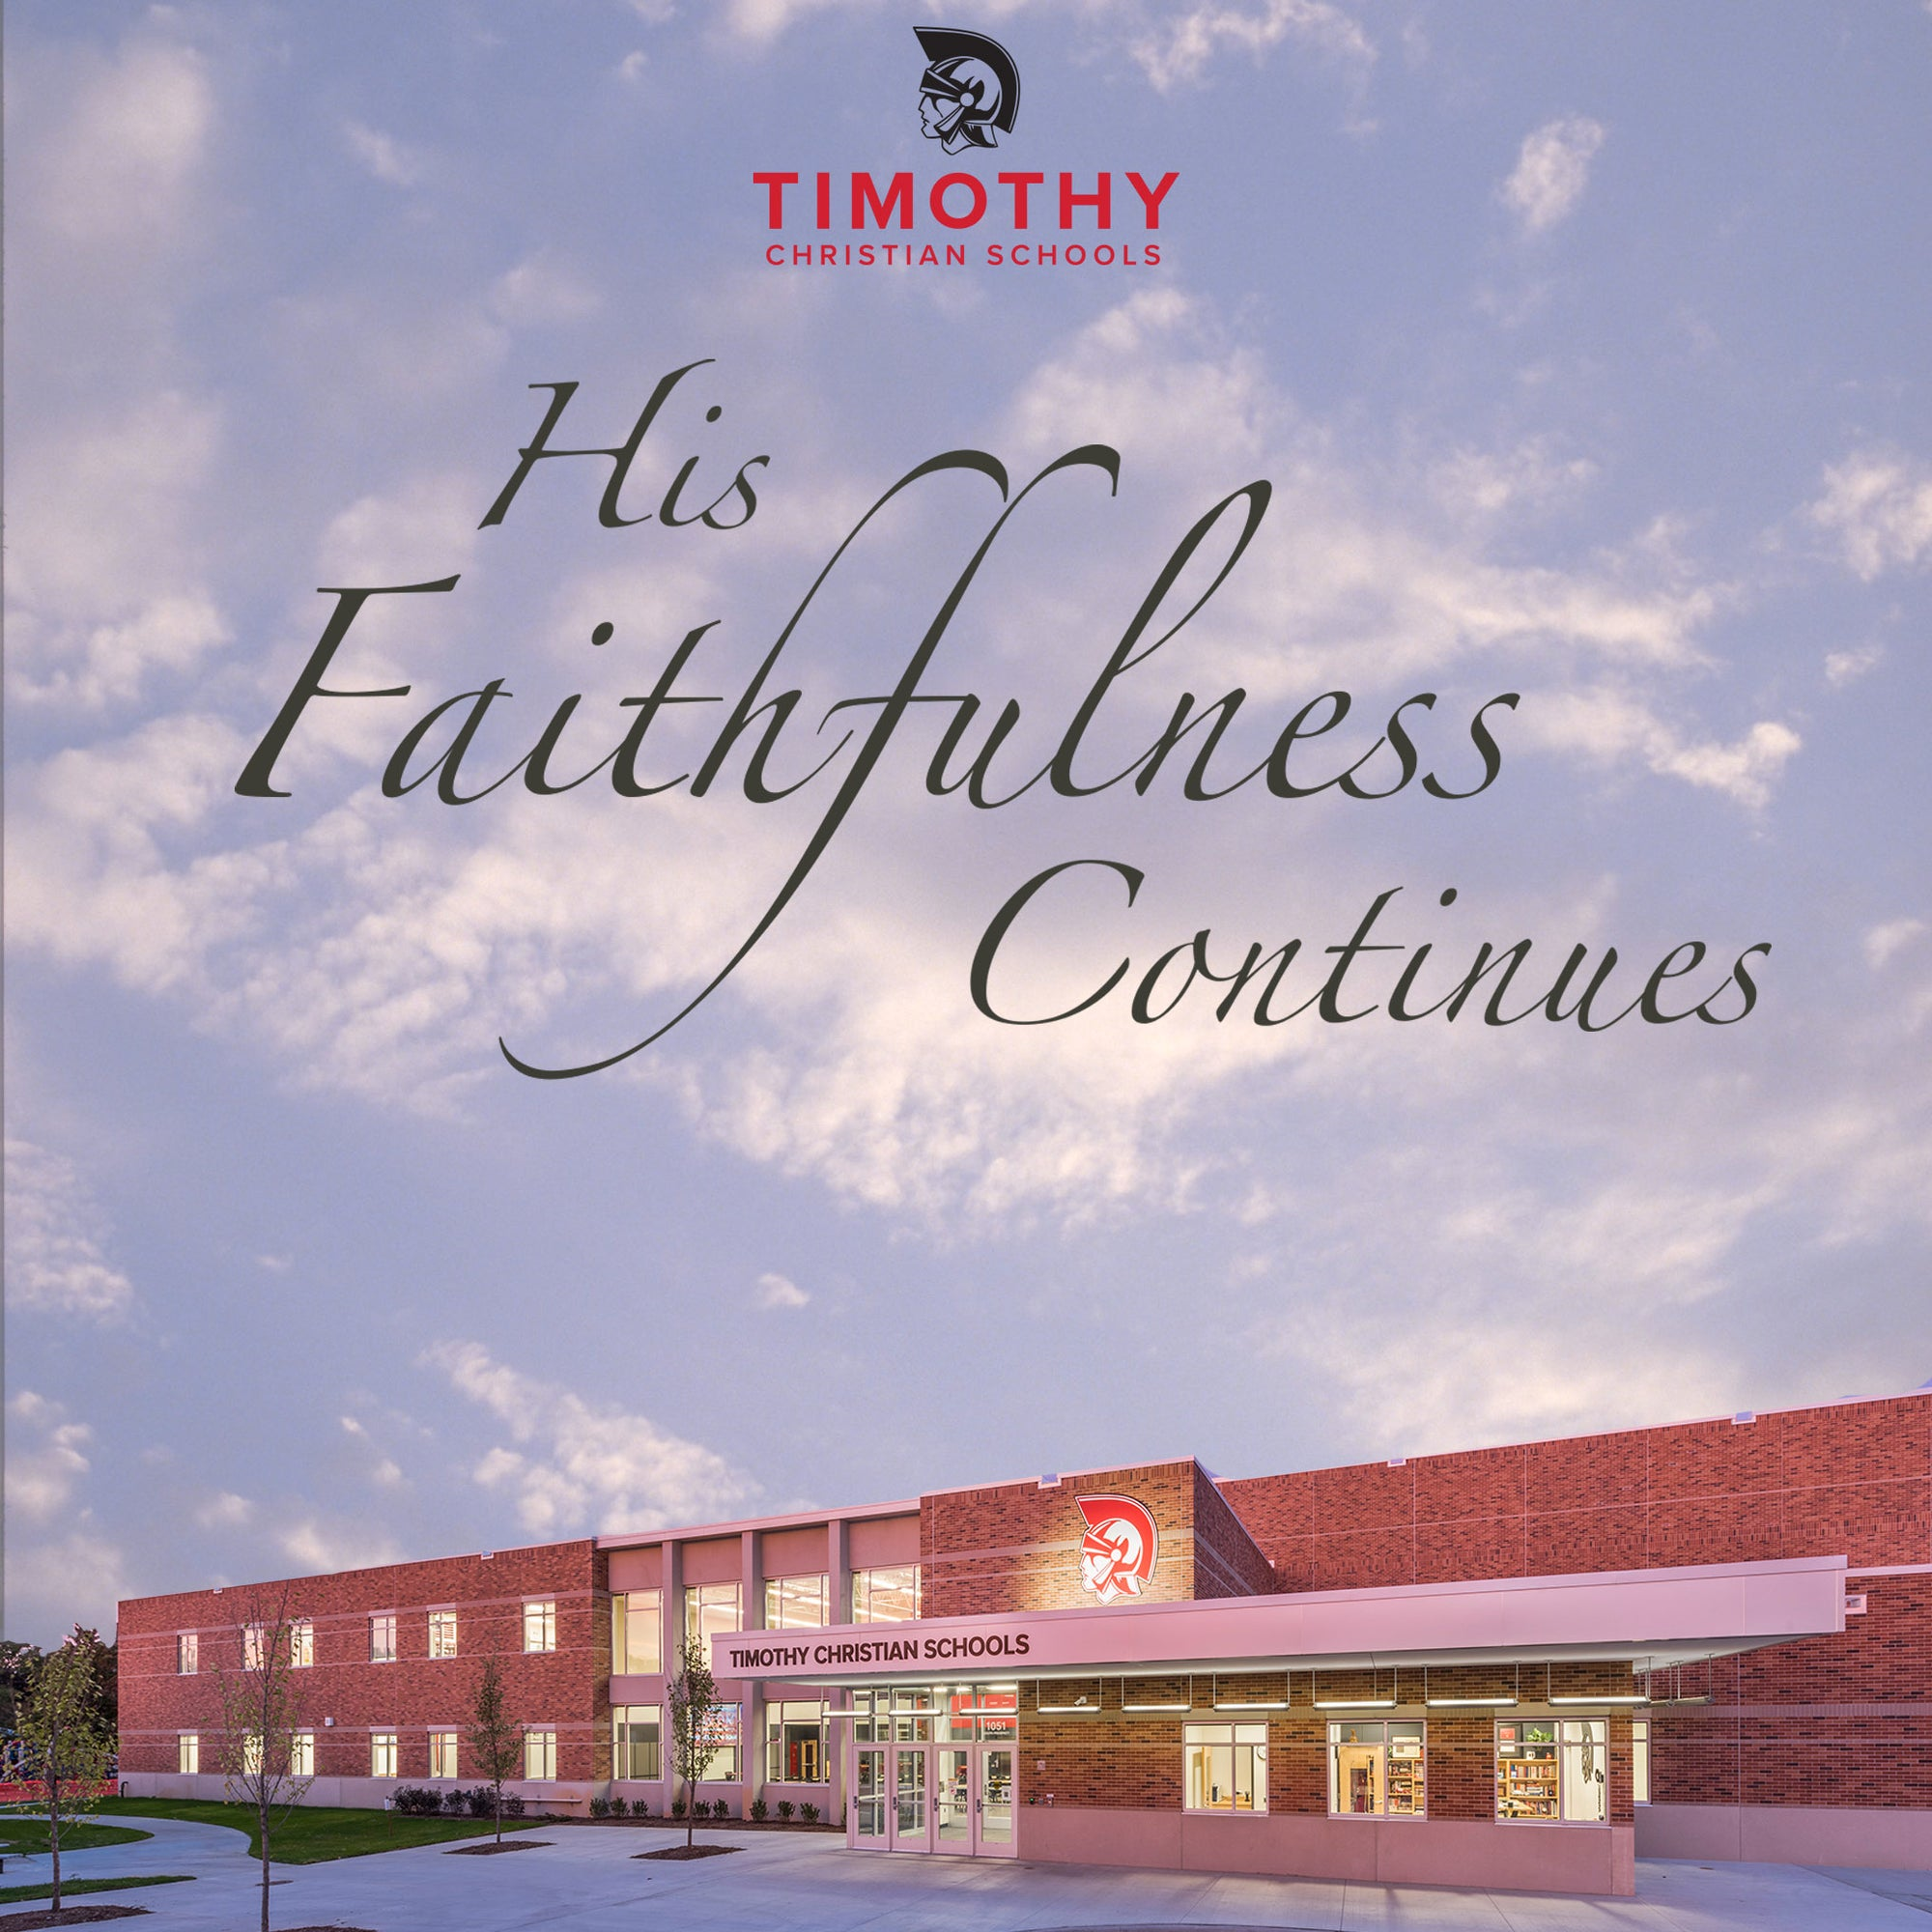 His Faithfulness Continues — A History of Timothy Christian Schools of Chicagoland